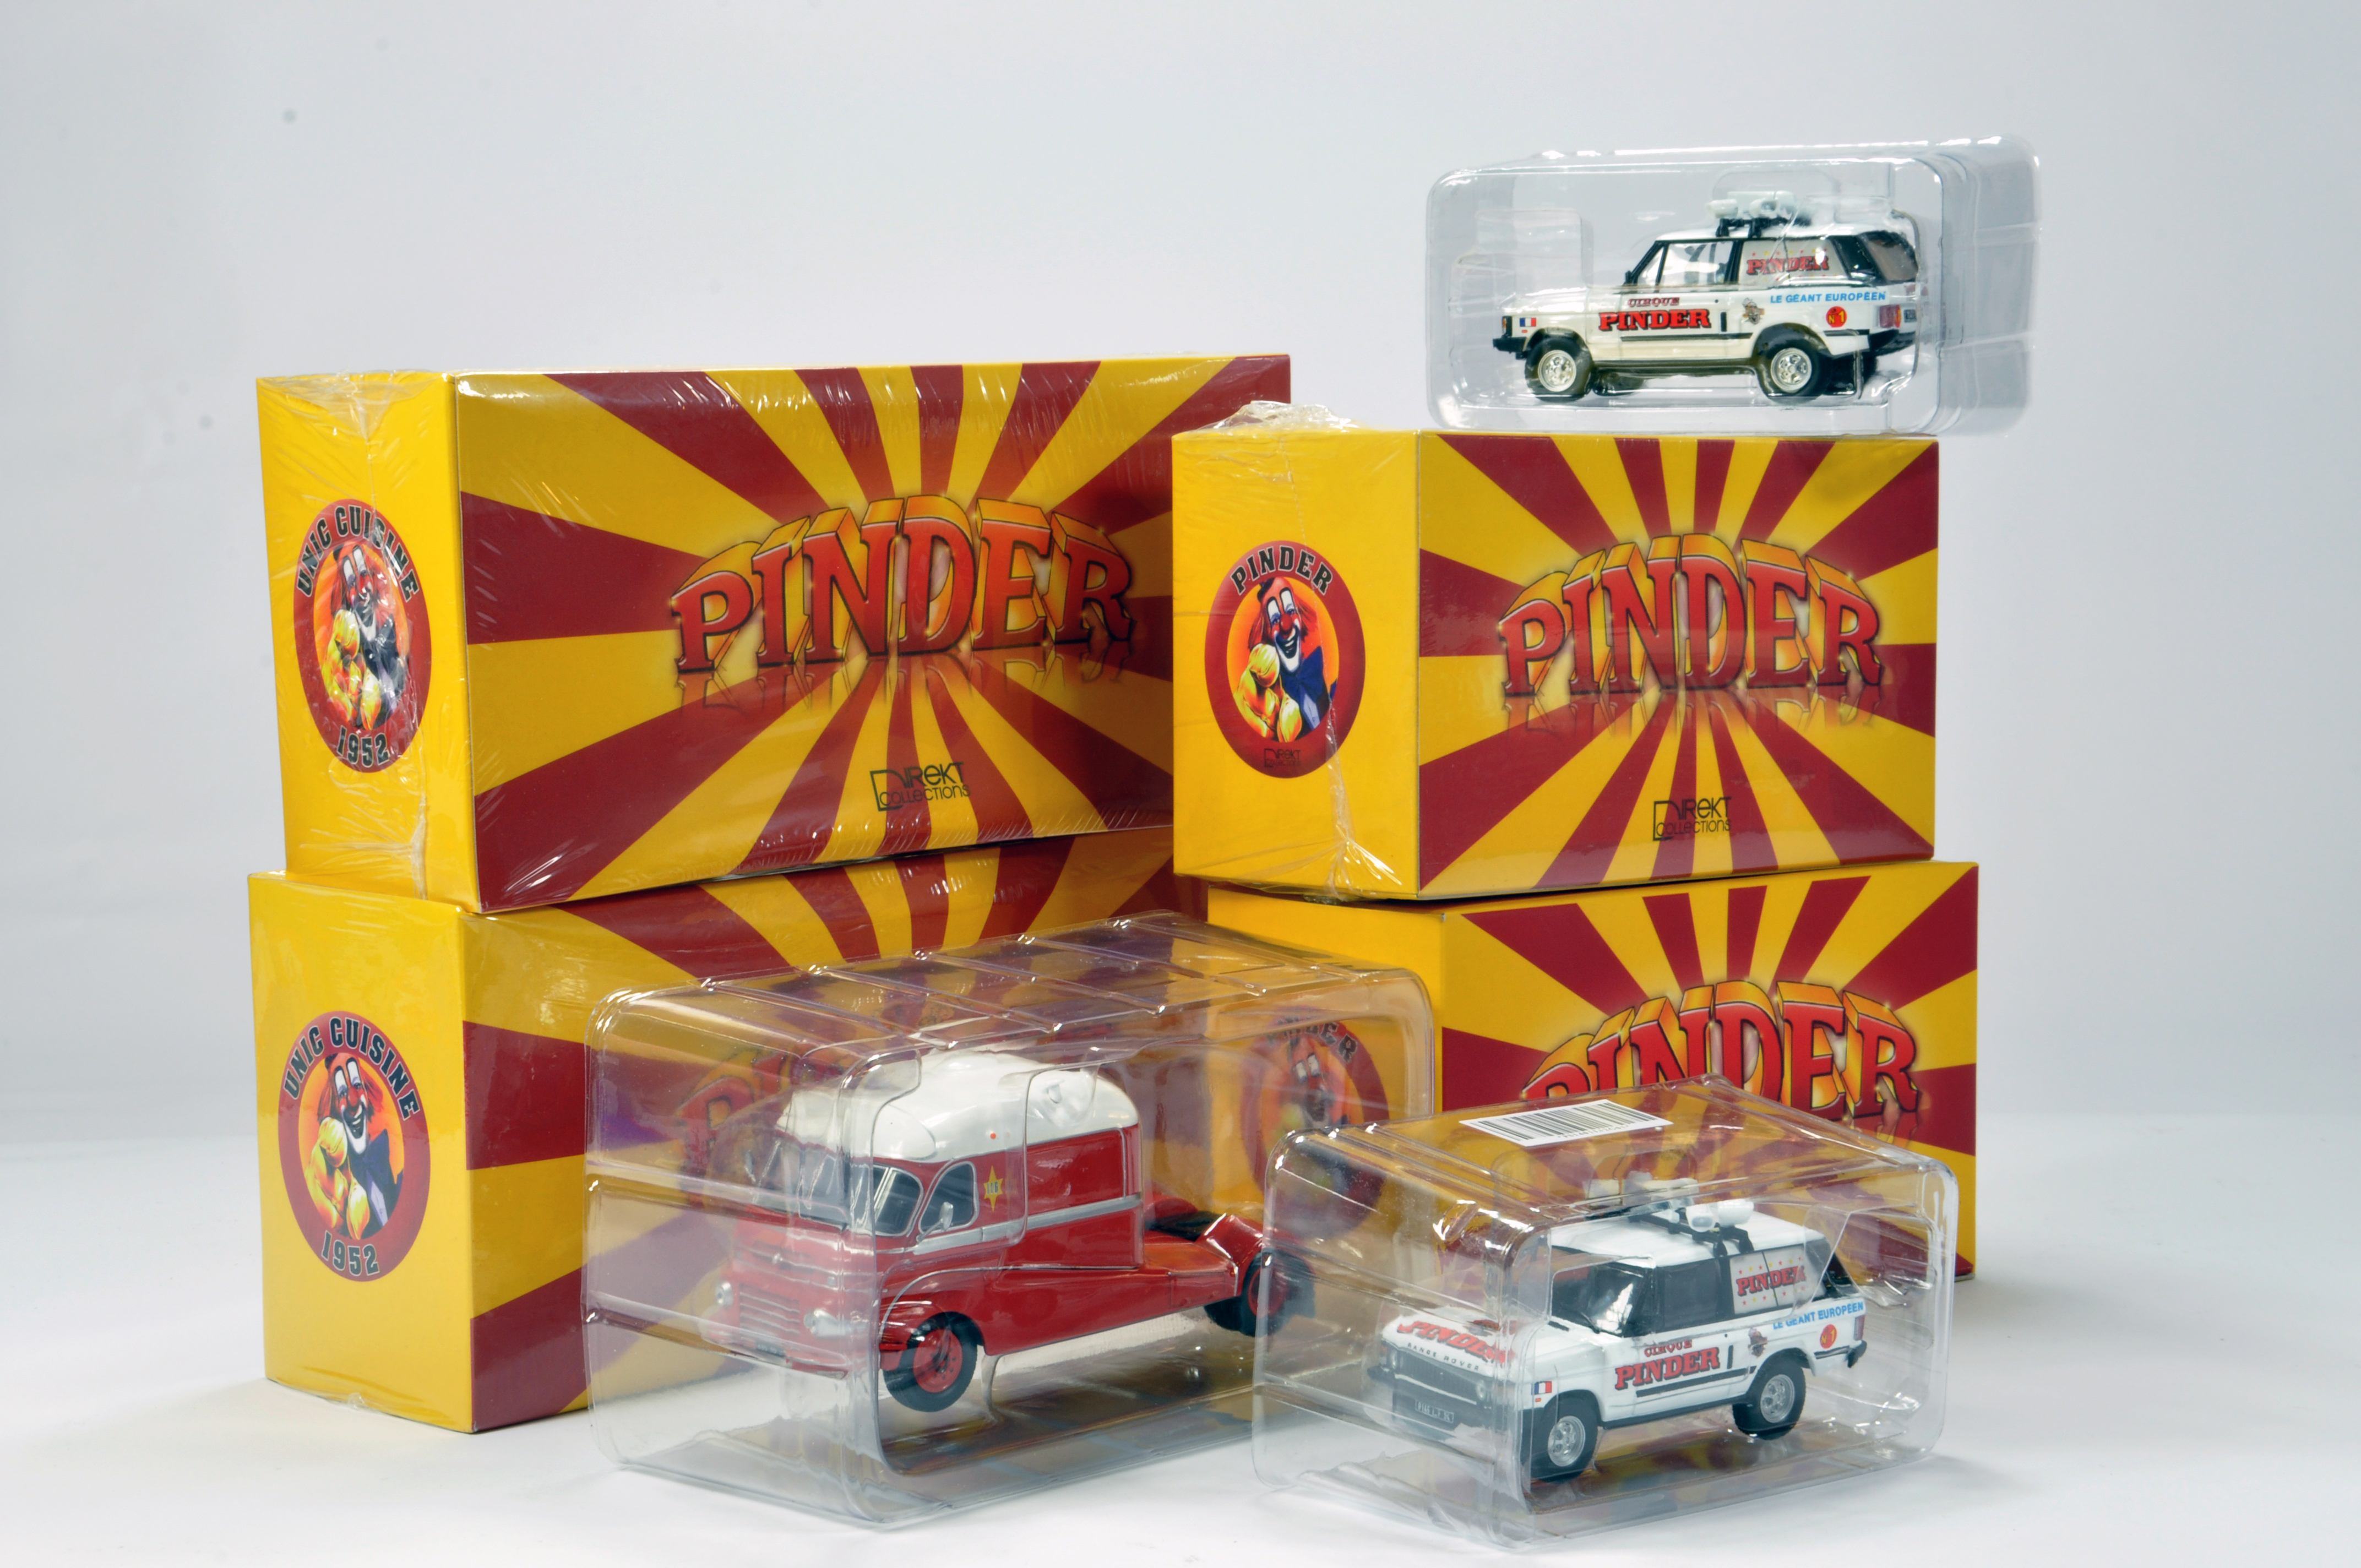 Lot 83 - Direkt Collections 1/43 Pinder assortment of limited edition models. Unic Cuisine x 2 plus Pinder